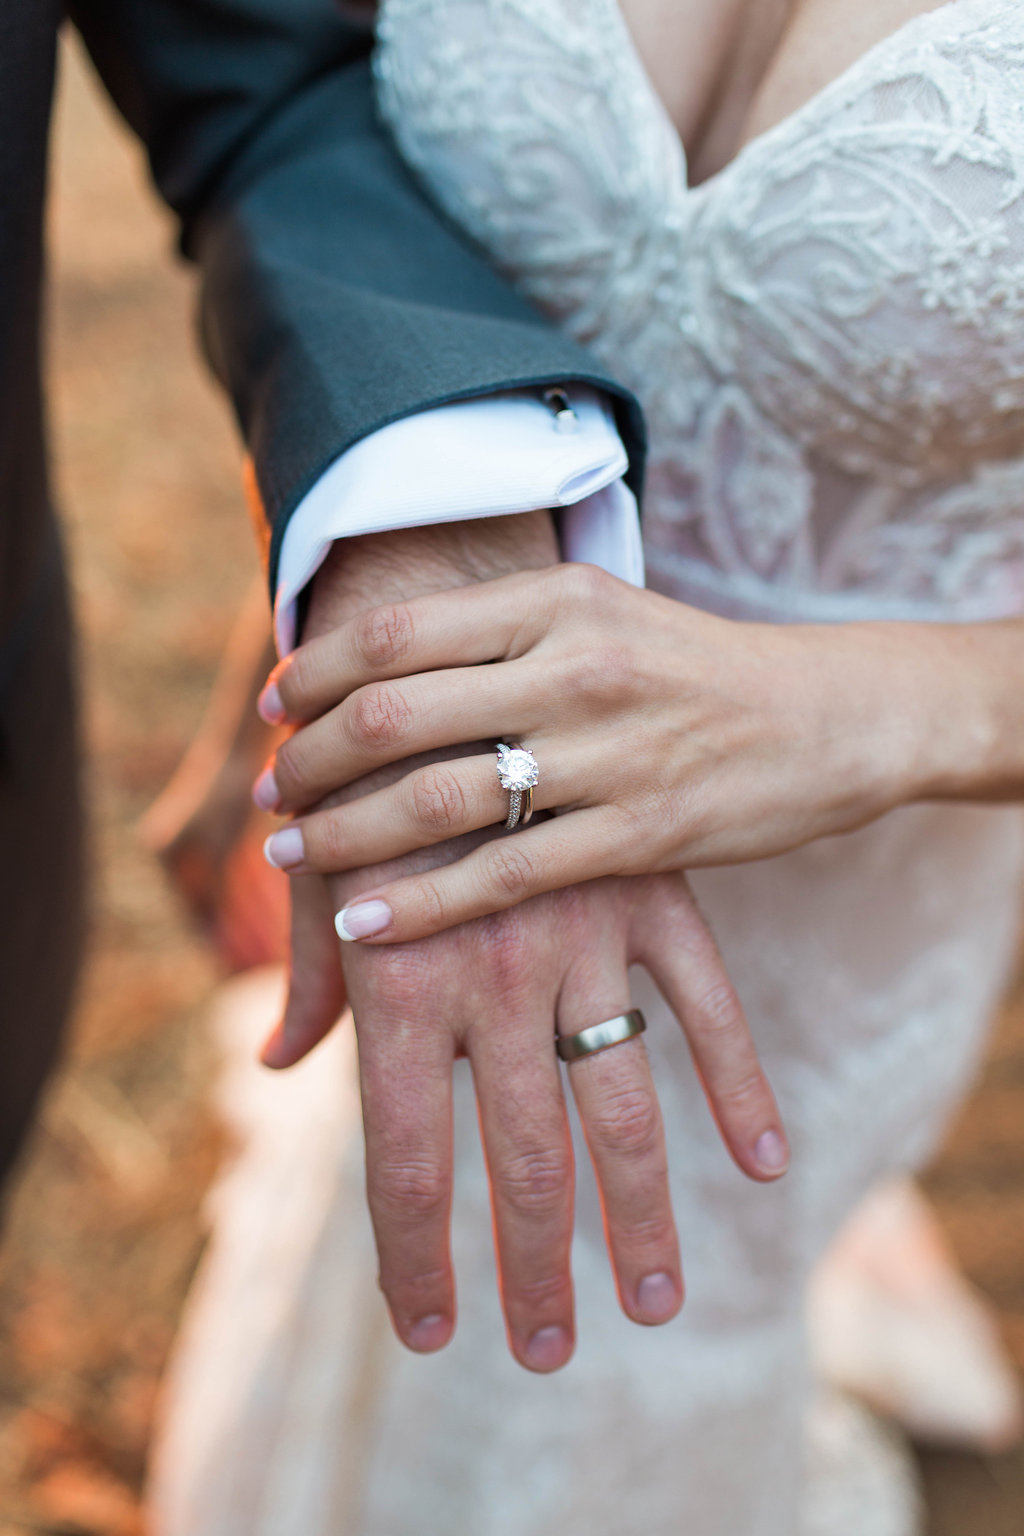 Bride holding groom's hand get the look of Keleigh Sperry's engagement ring